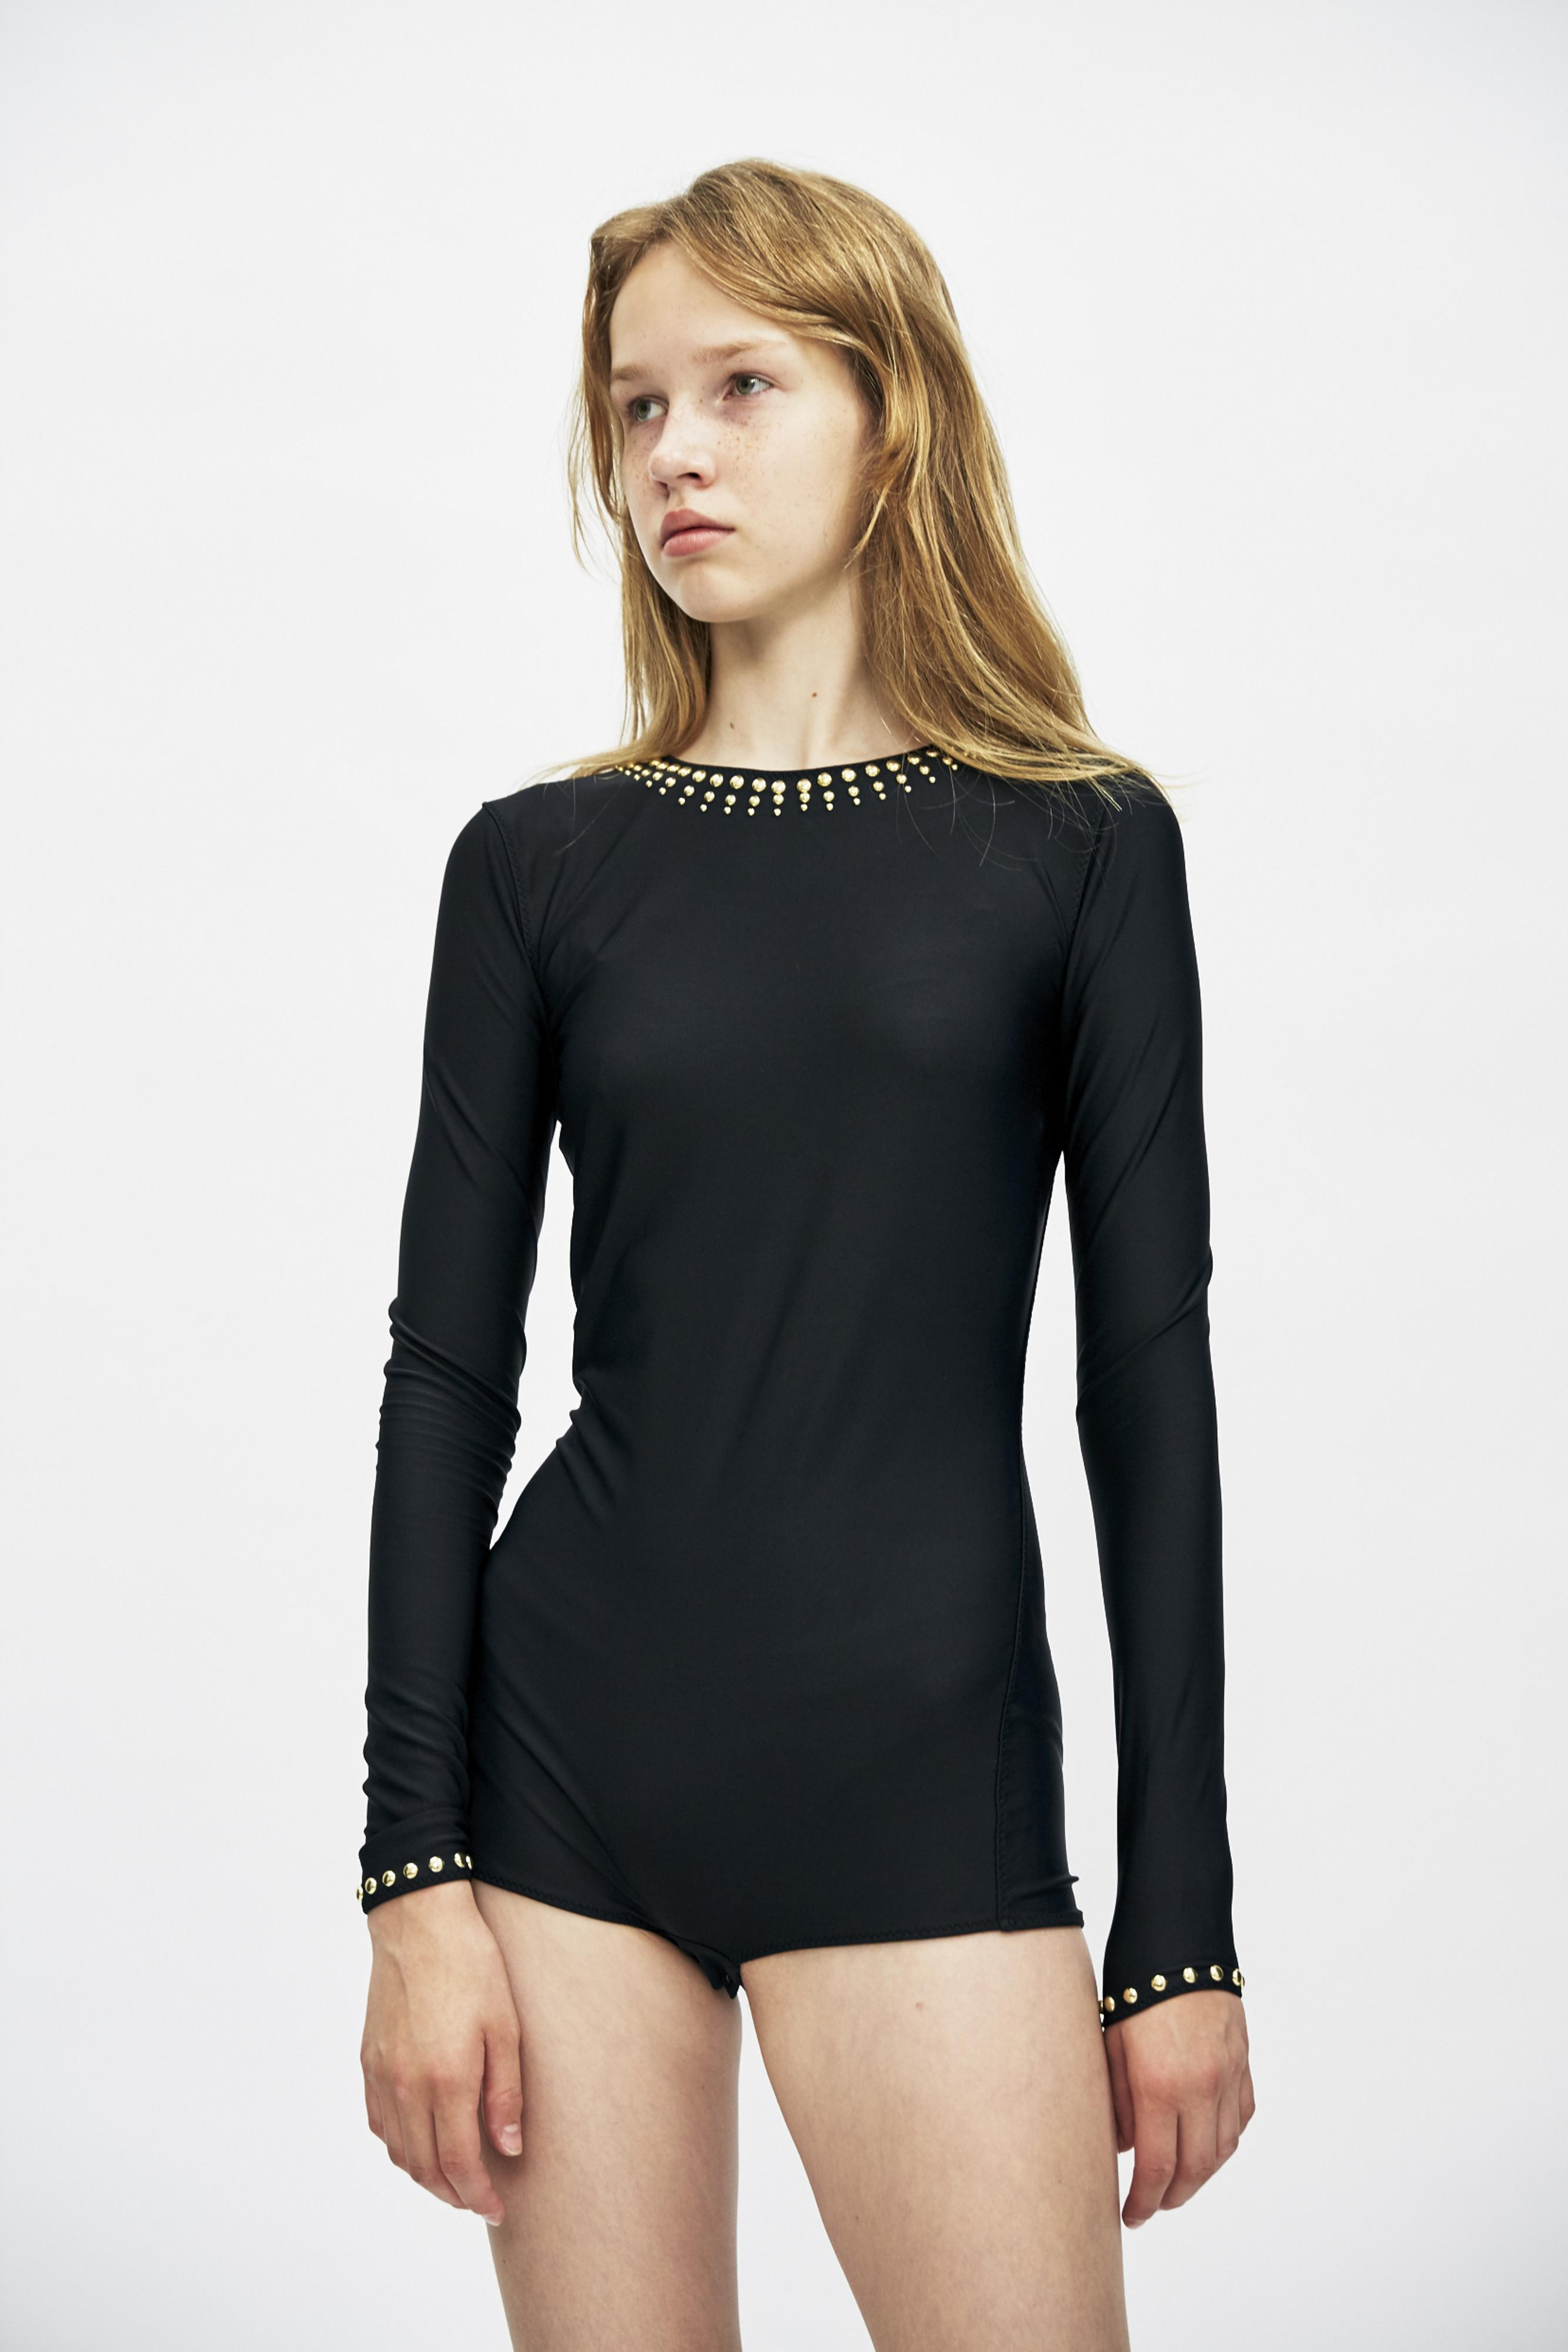 Maison Margiela long-sleeve fitted bodysuit Clearance Choice Discount Sast 2018 New For Sale Fake Cheap Price jjbJ1iNg